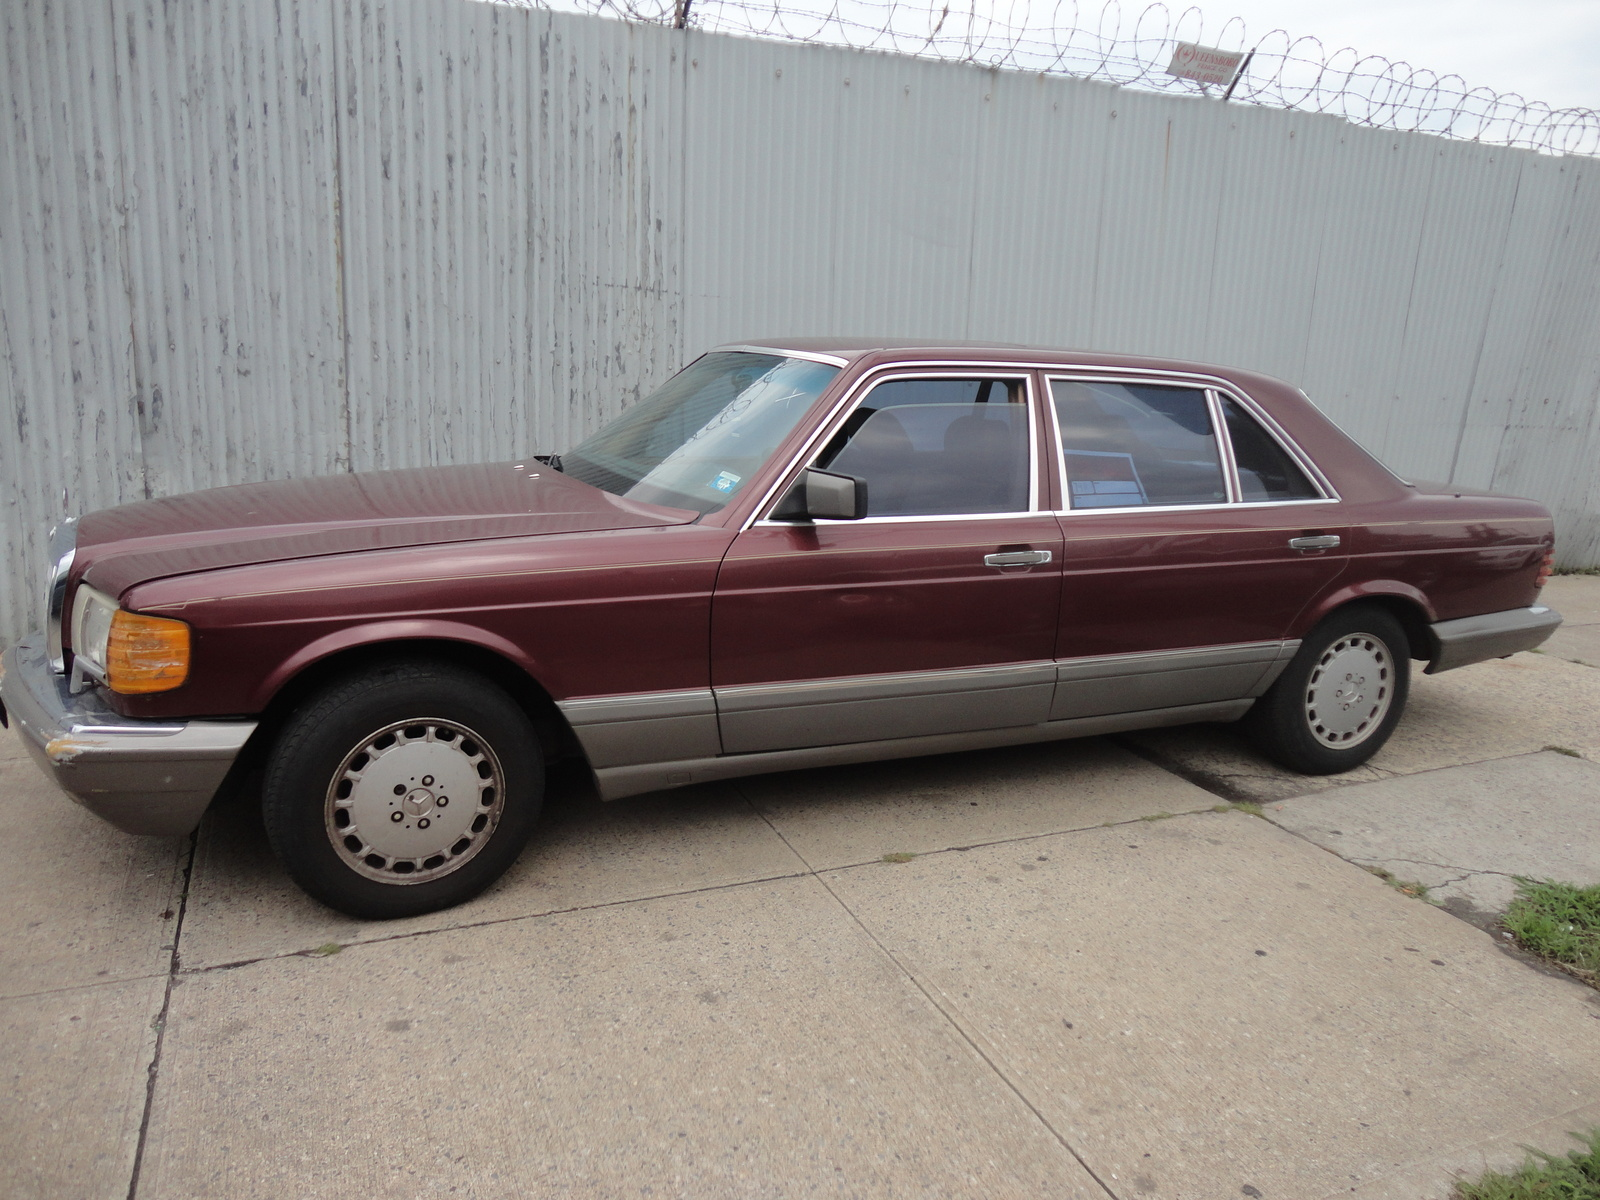 1987 mercedes benz 300 class pictures cargurus for 1987 mercedes benz 300sdl